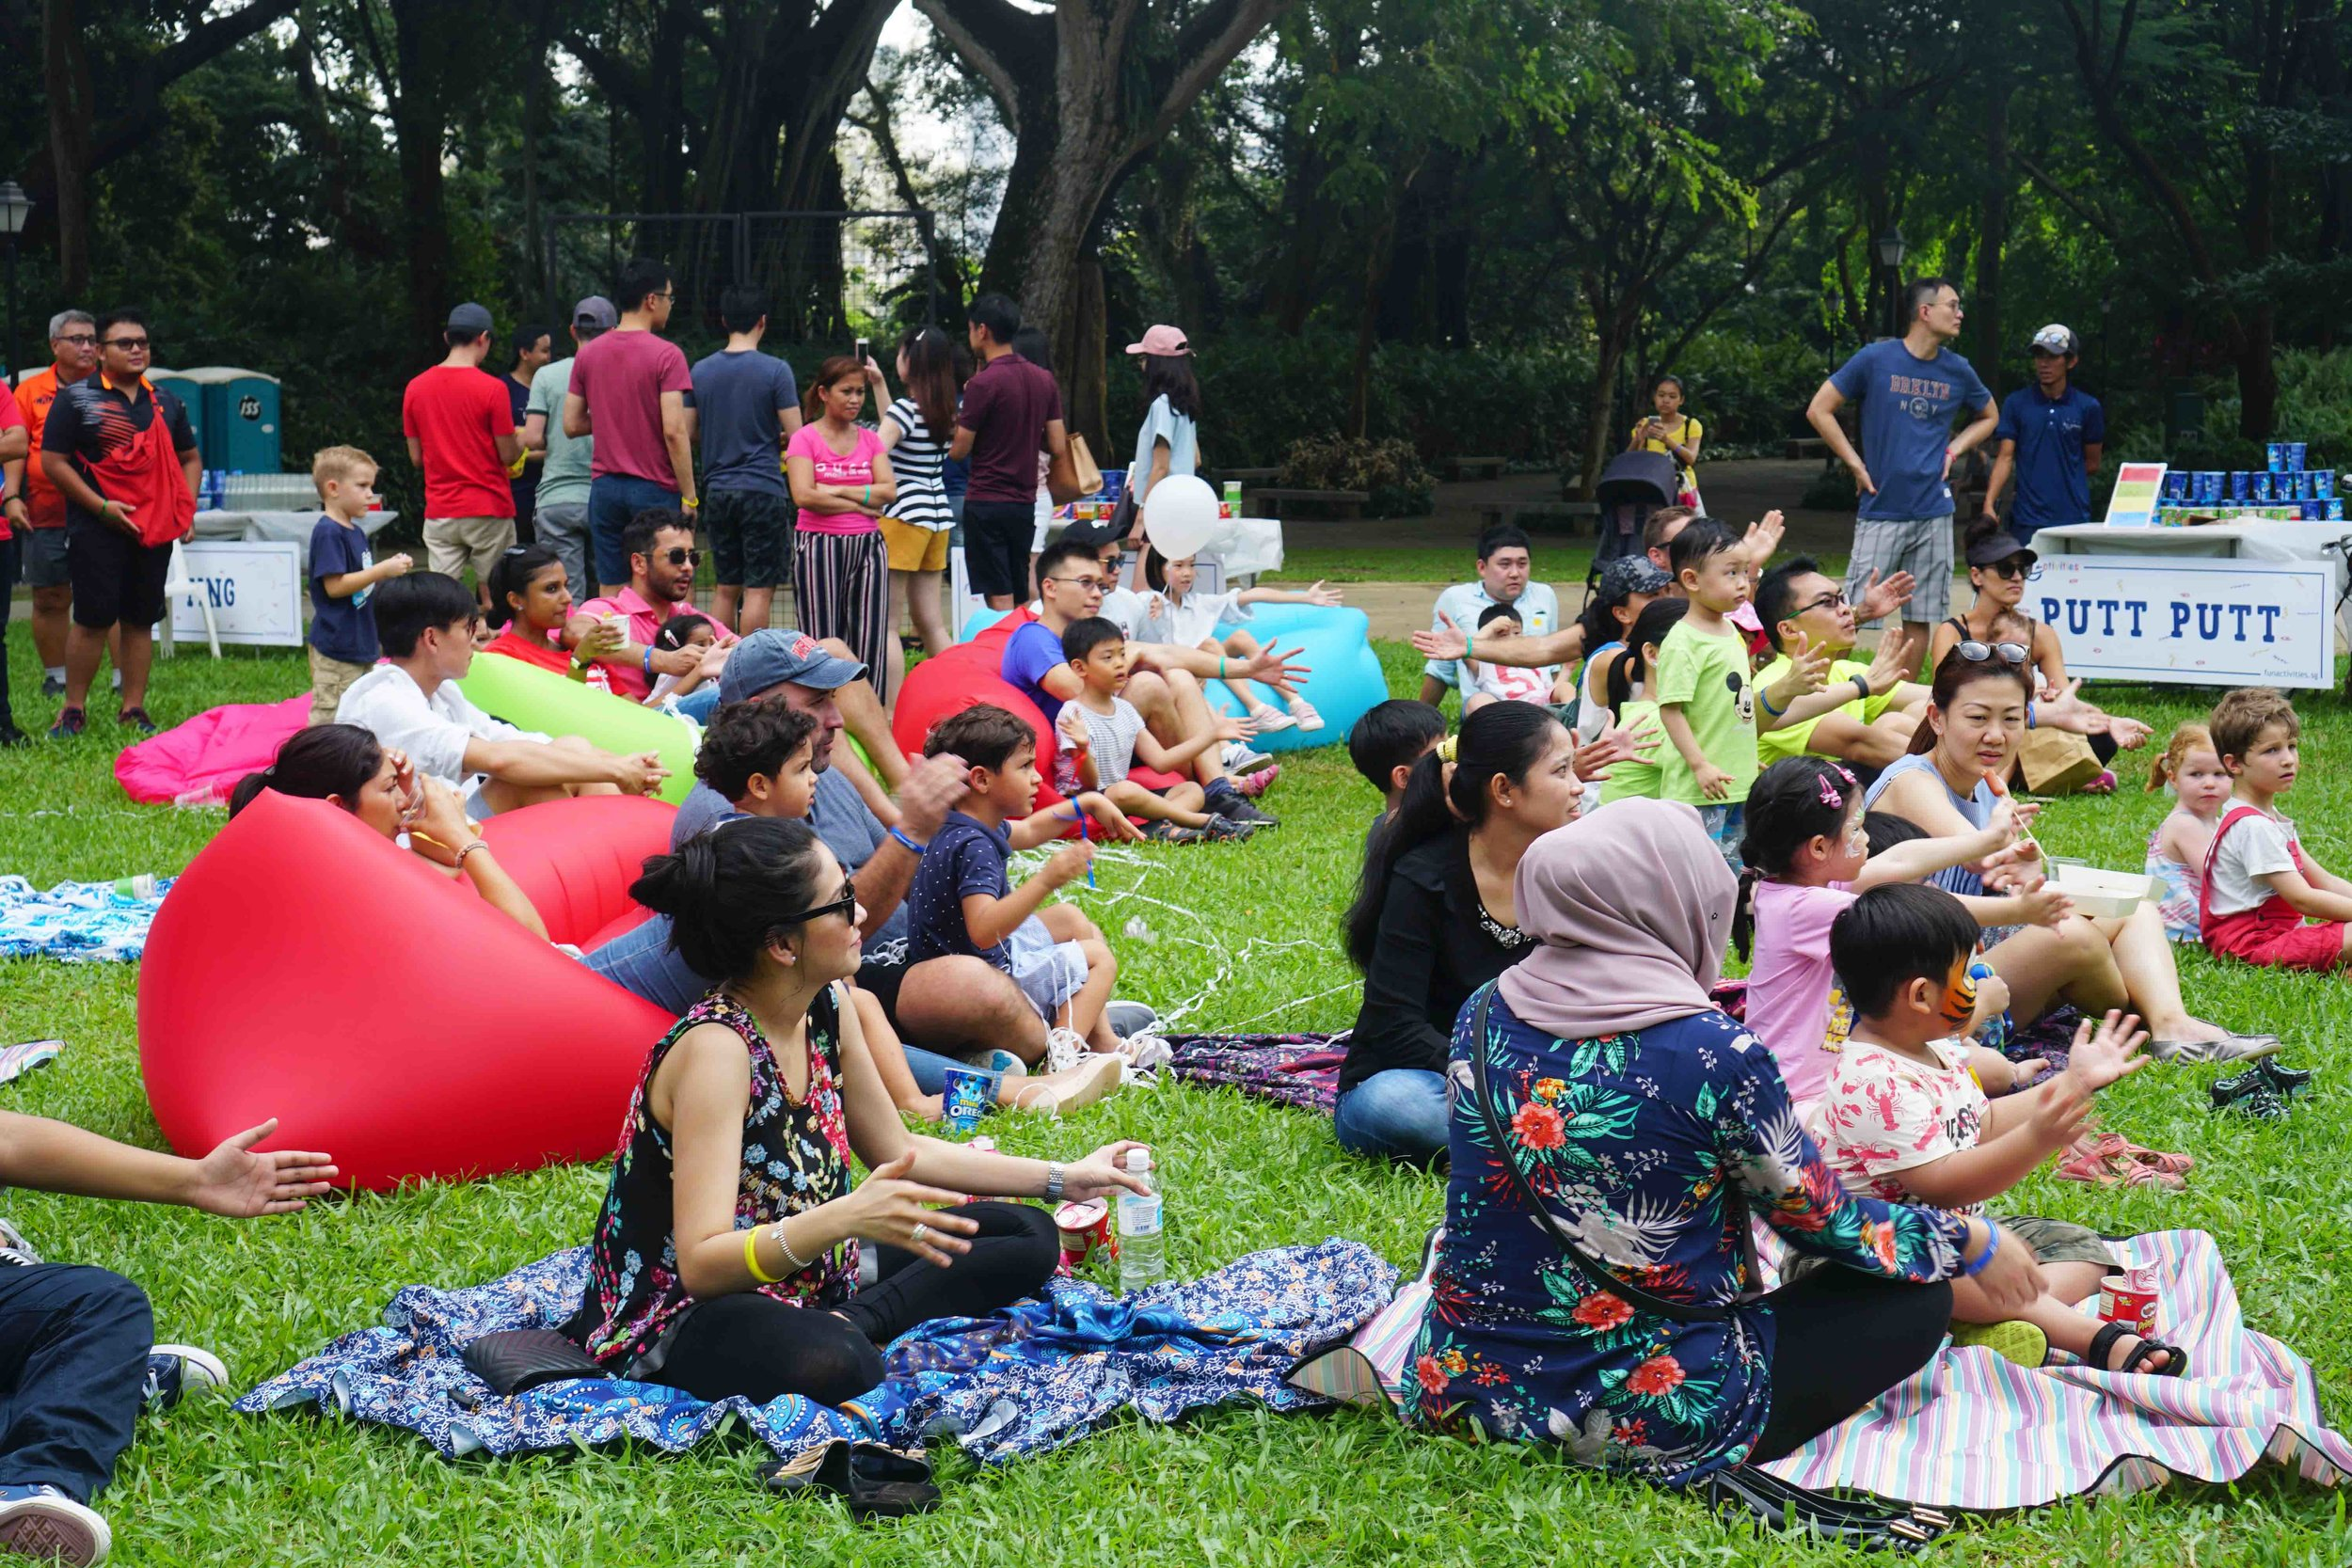 FAMILY DAY - Carnival games, food booths, music, entertainment and smiles all around